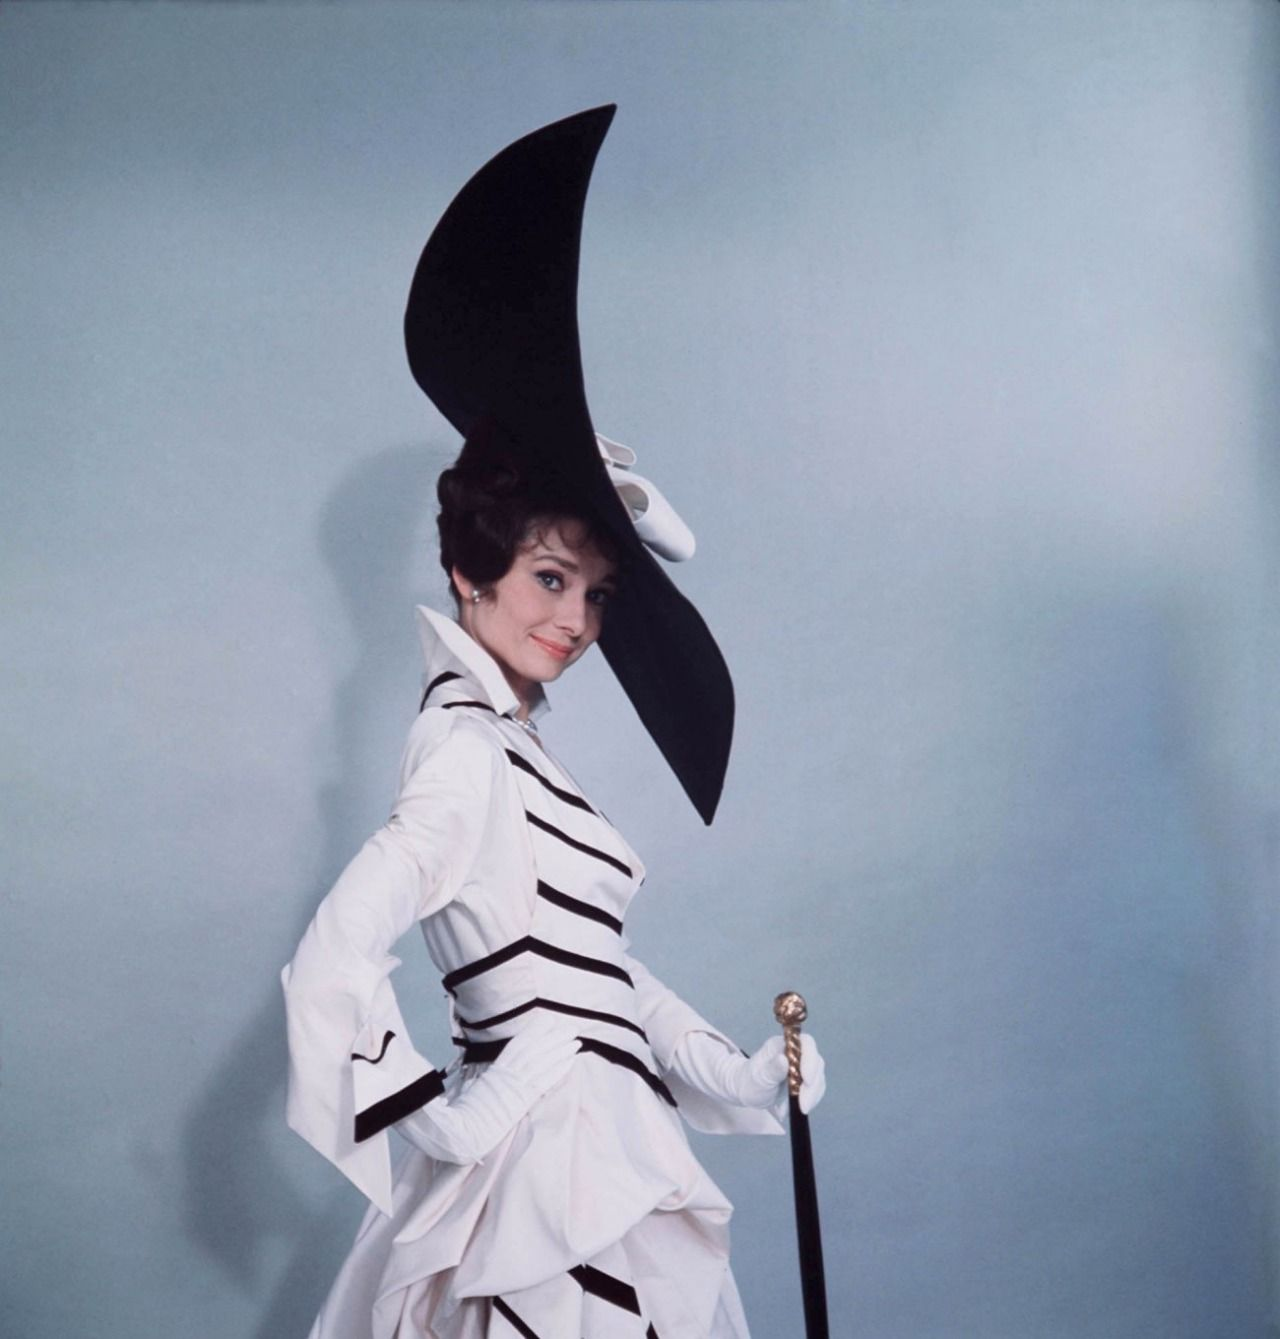 Audrey Hepburn in costumes by and photographed by Cecil Beaton for My Fair Lady (1964).